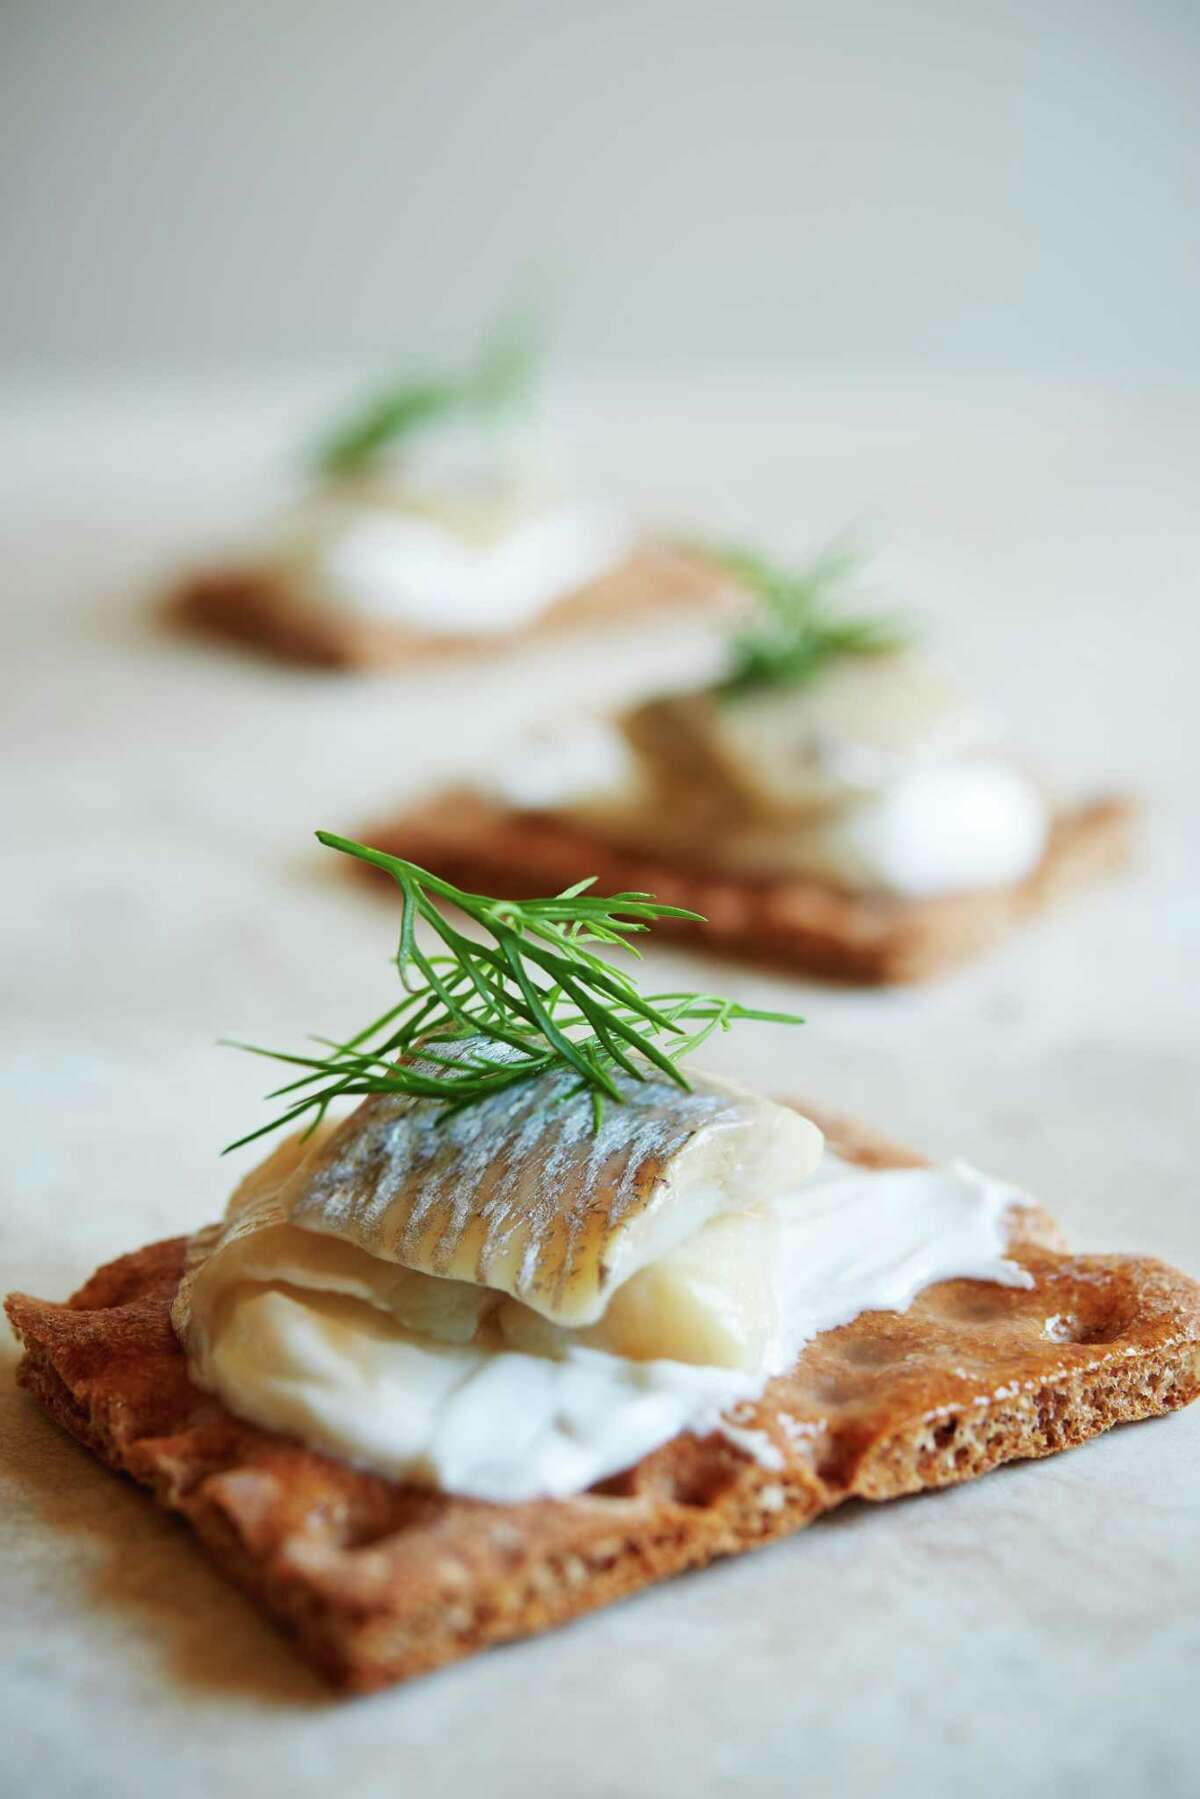 Could pickled herring cure your hangover?